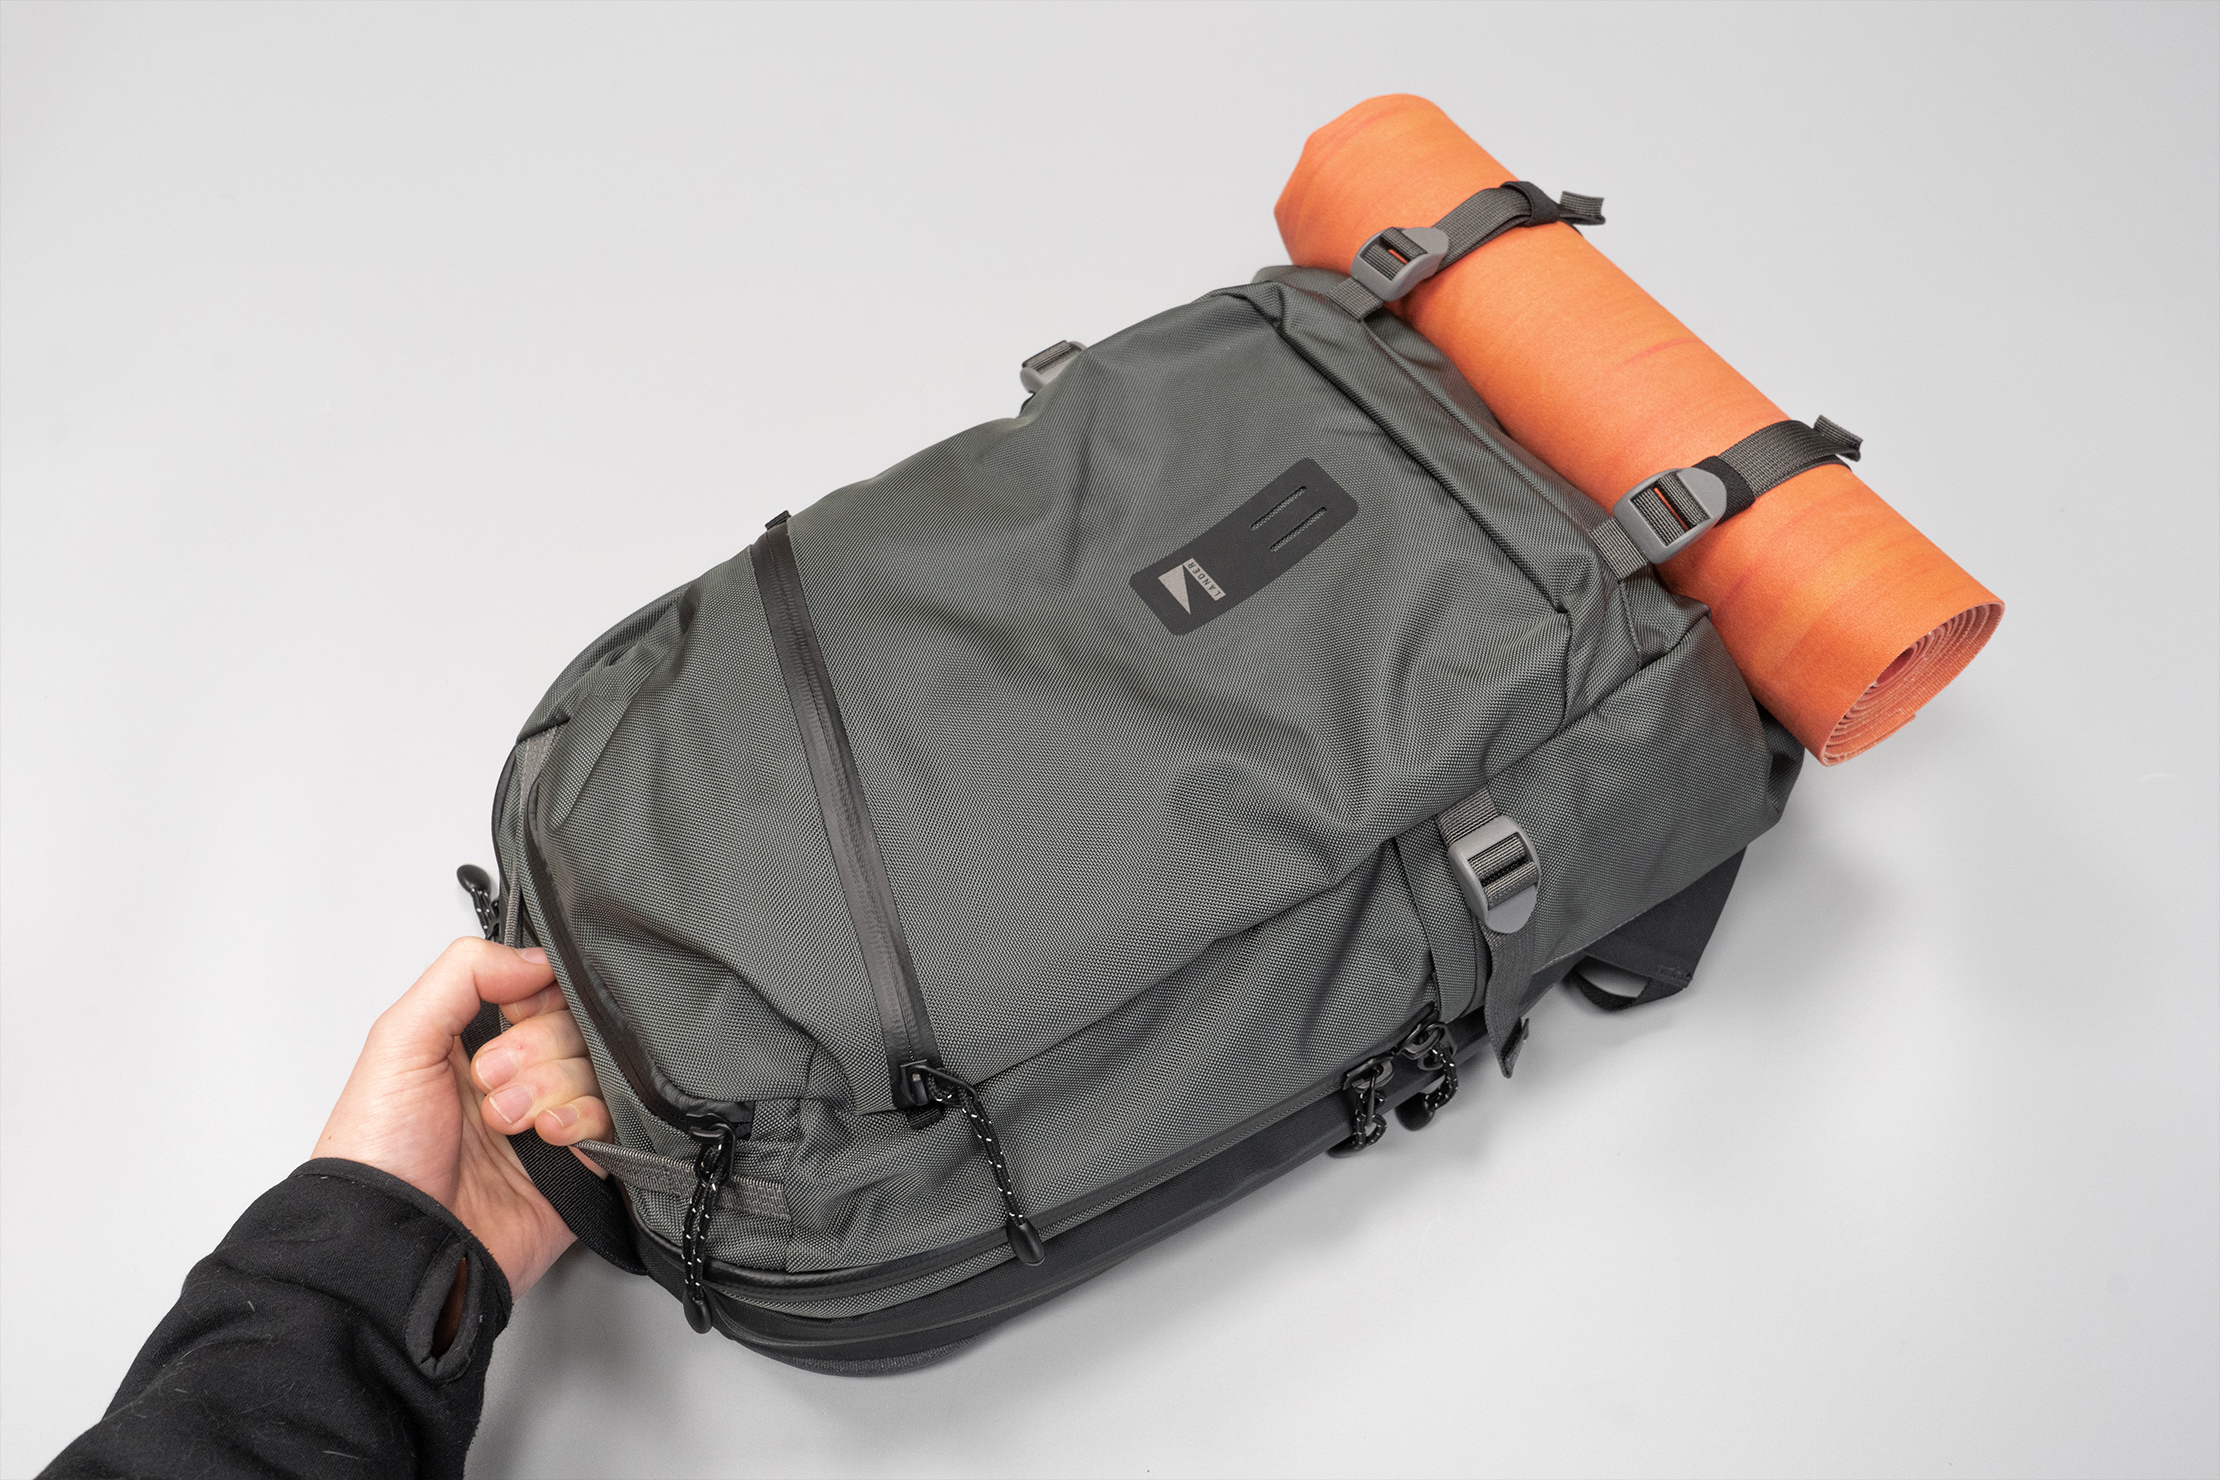 Lander Commuter Backpack 25L | Dual top handles makes for a balanced carry